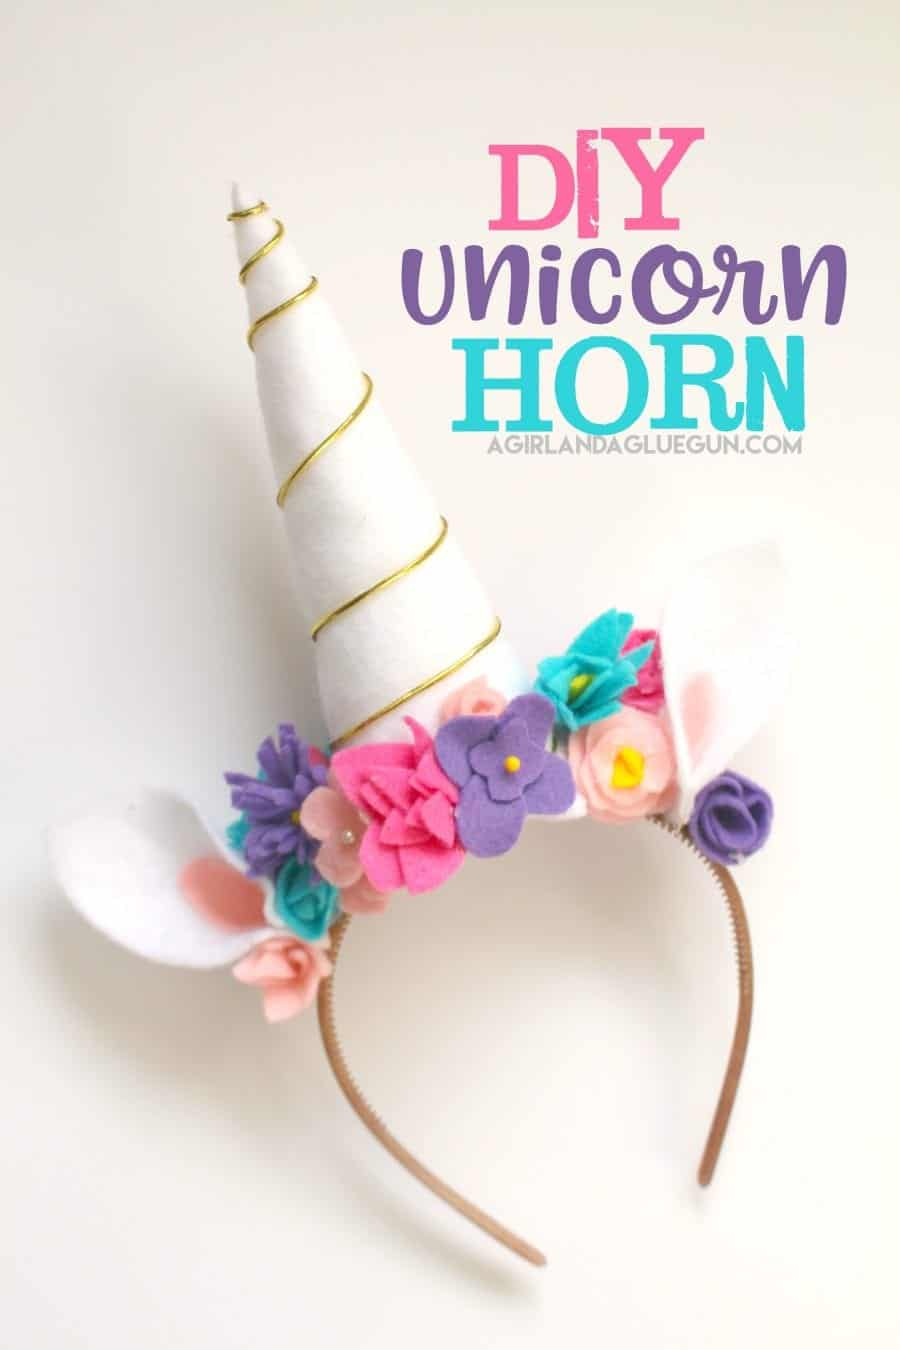 Unicorn costume diy a girl and a glue gun next up is the unicorn horn you can make this how big or small you want the bigger it getsthe heavier and falls off a lot easier so keep it in mind solutioingenieria Choice Image